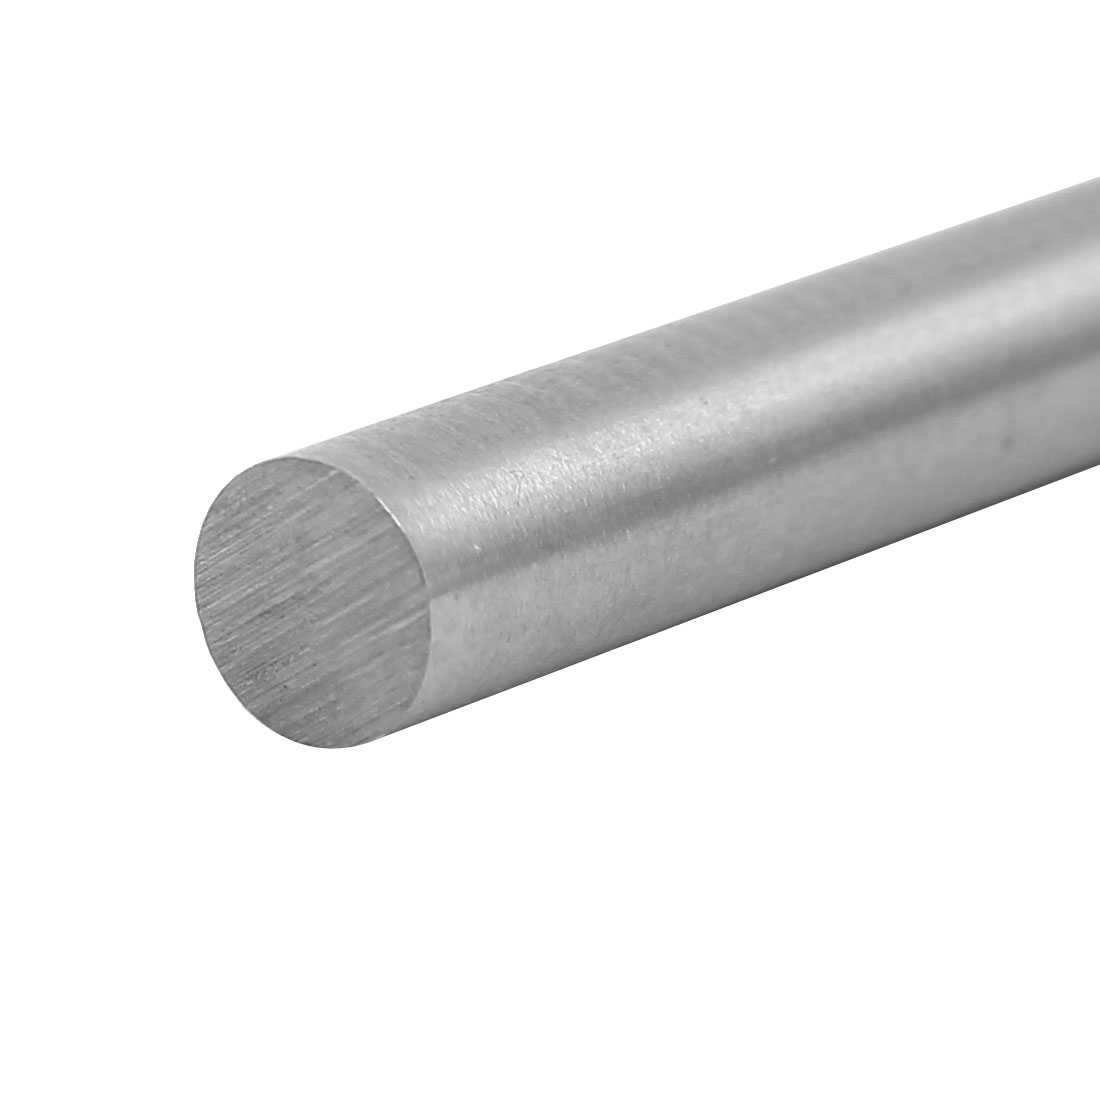 12mm Dia 200mm Length HSS Round Shaft Rod Bar Lathe Tools Gray